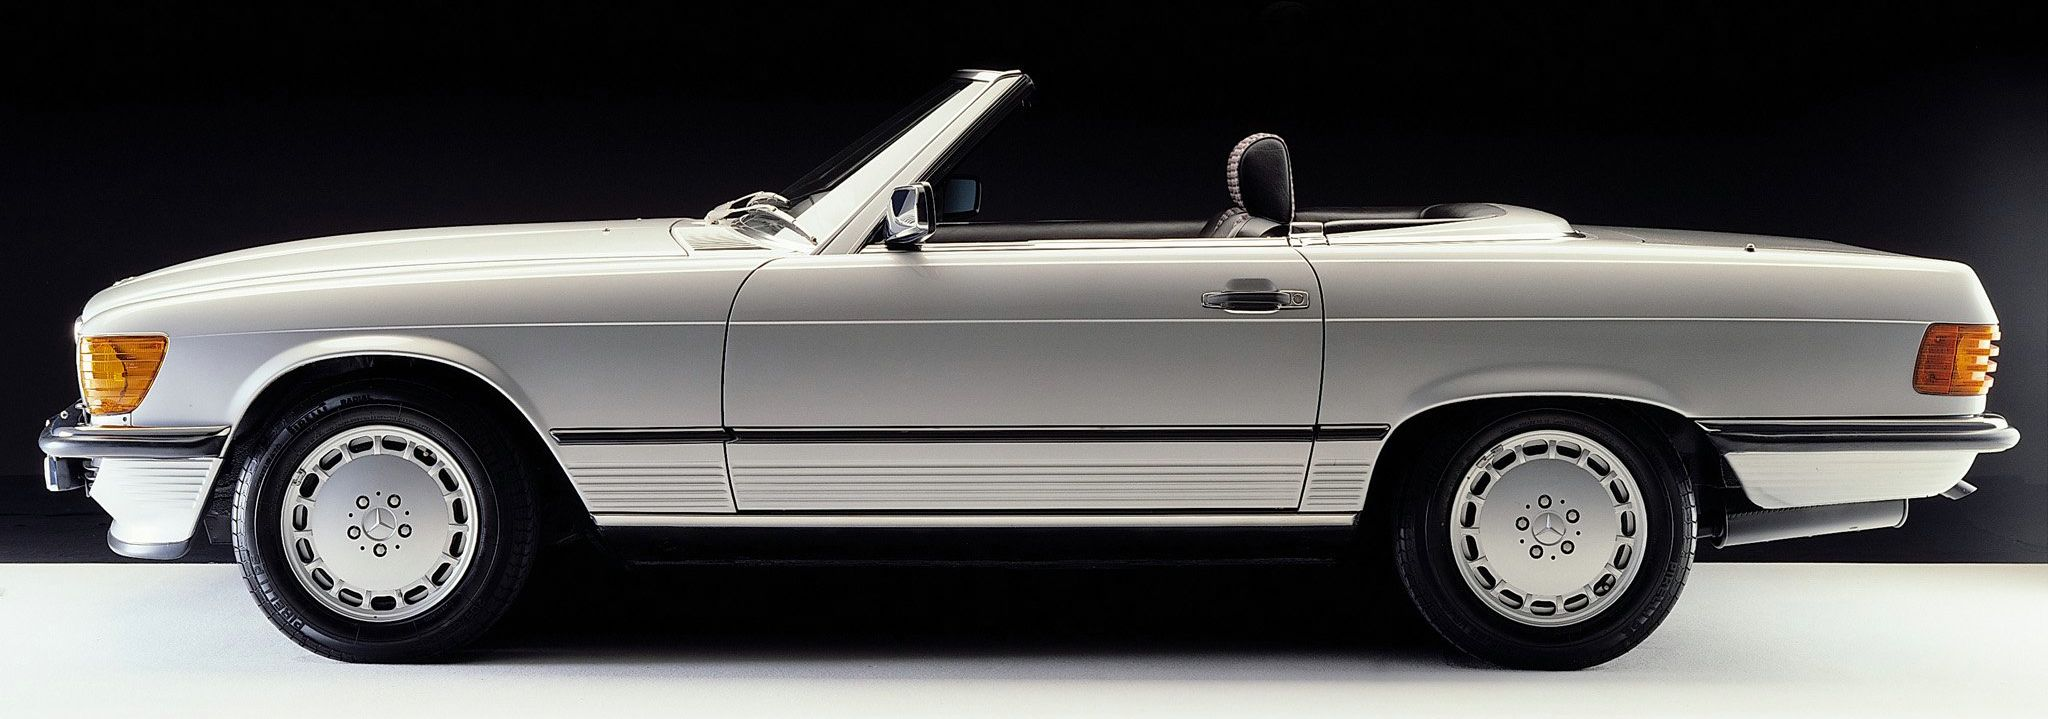 Read all about our classic car of the month - the Mercedes-Benz SL ...